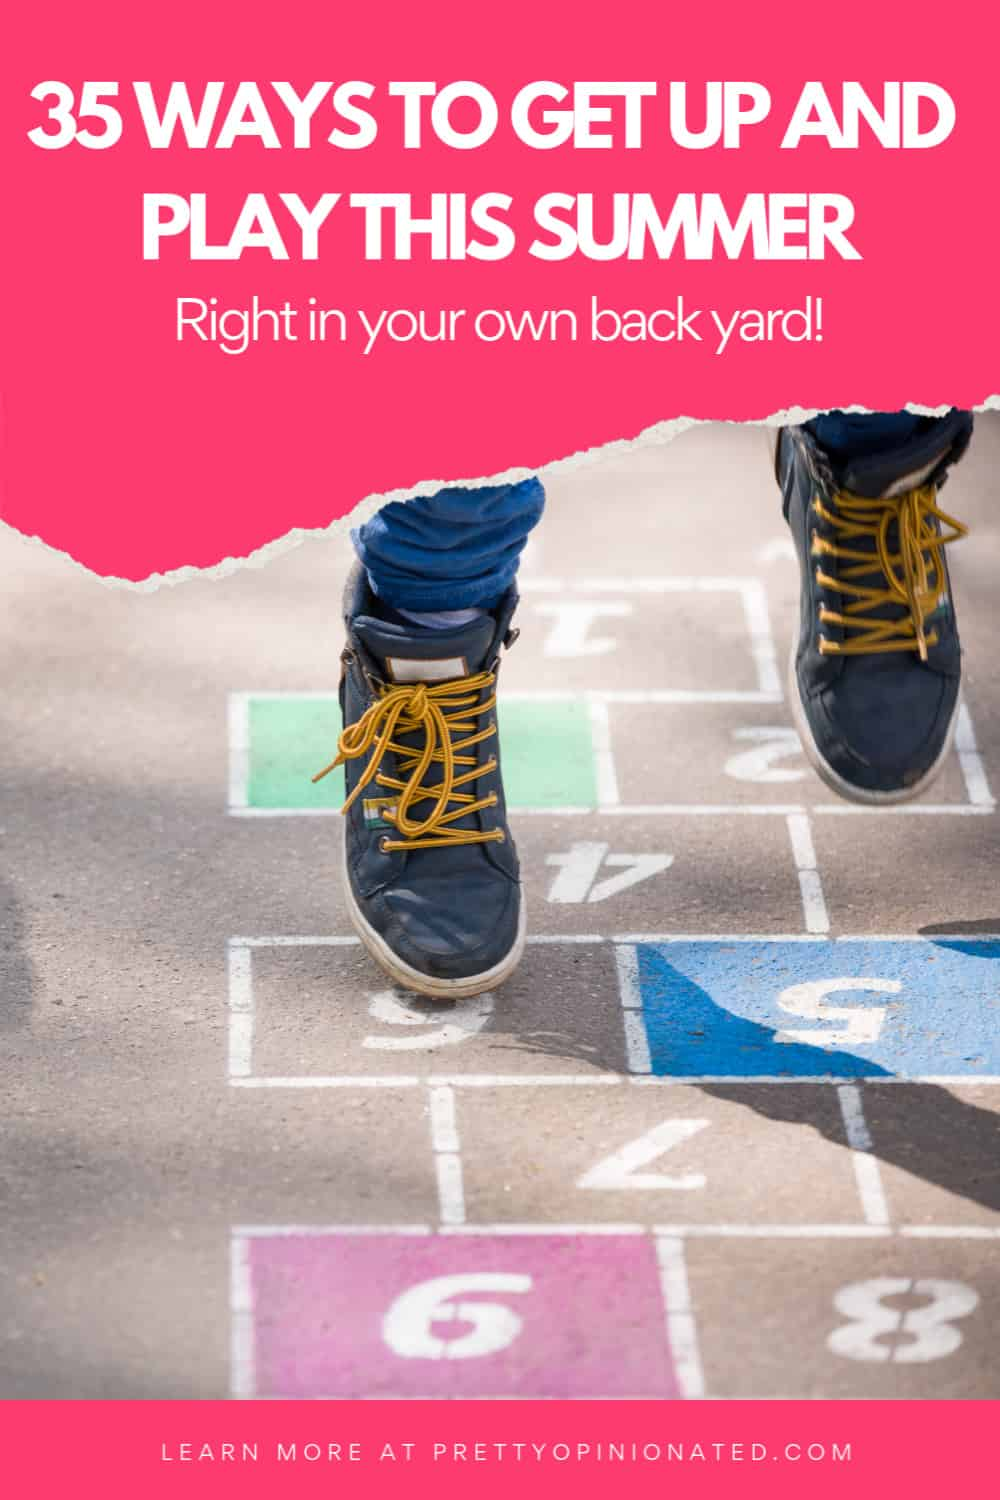 Make outdoor play time a priority this summer! Check out 35 fun ideas to help you Get Up and Play more together + grab a free printable to help keep track of your family's activities.